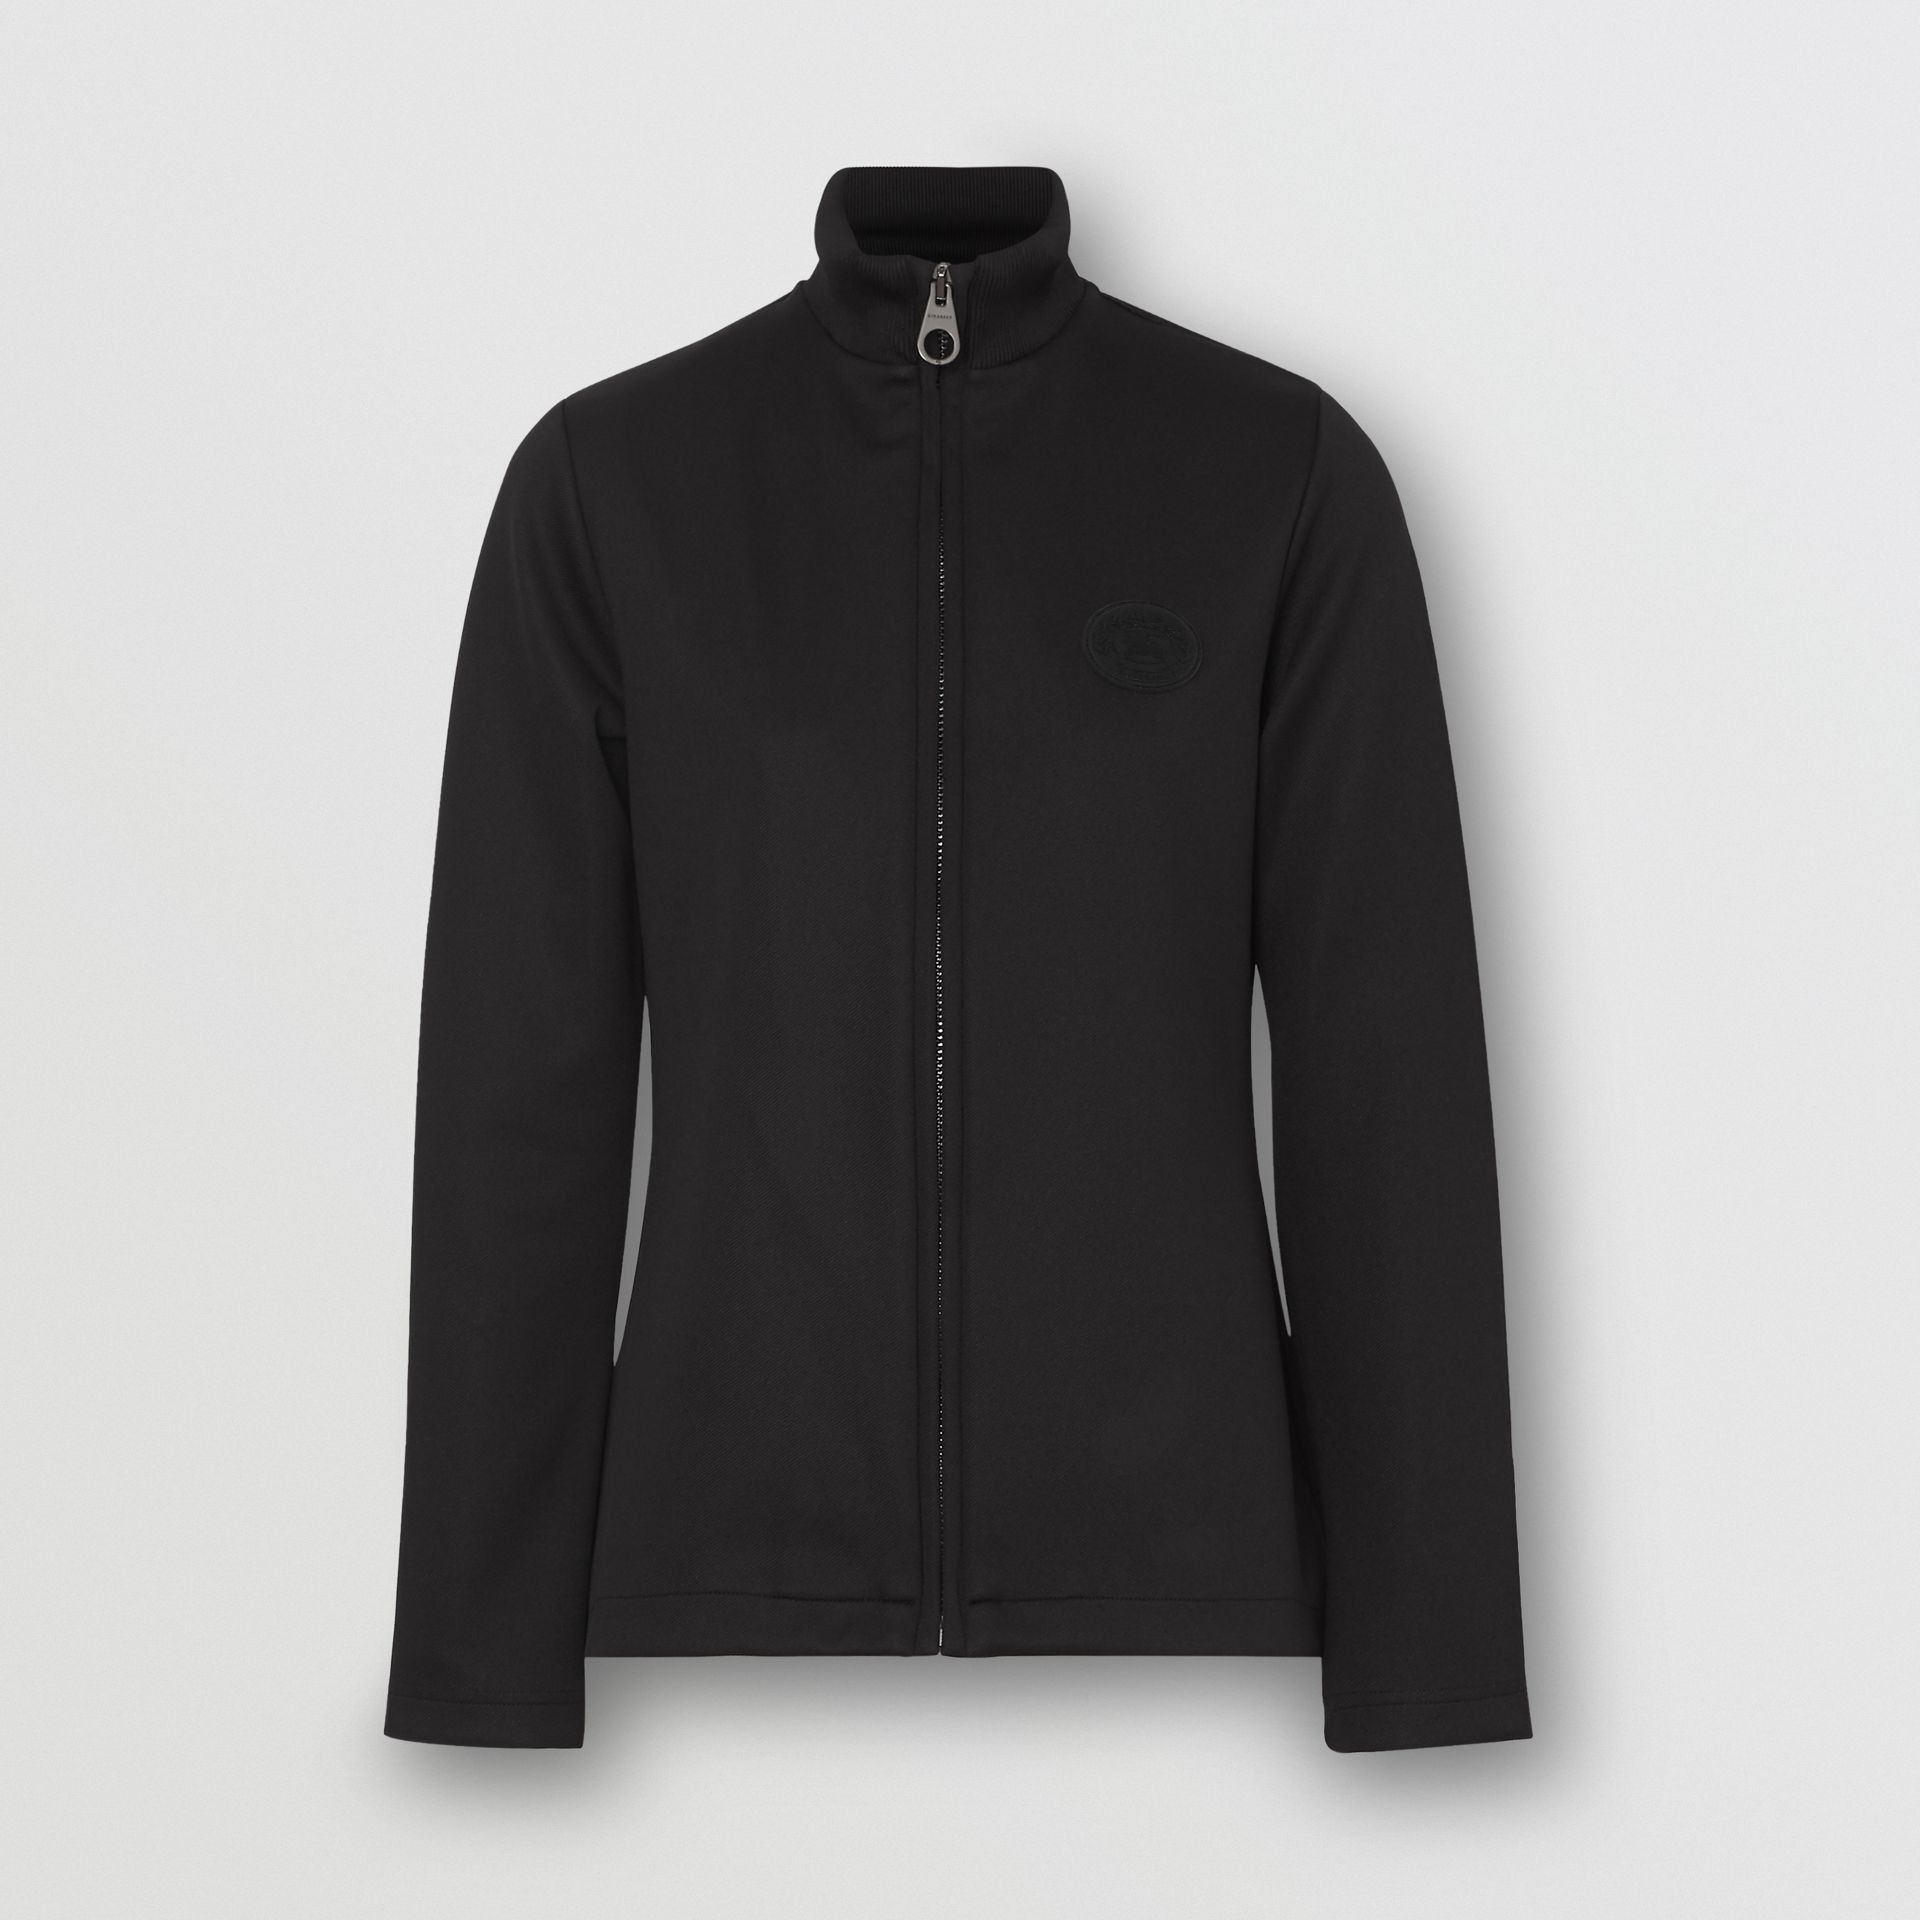 Crest Detail Funnel Neck Track Top in Black - Women | Burberry - gallery image 3